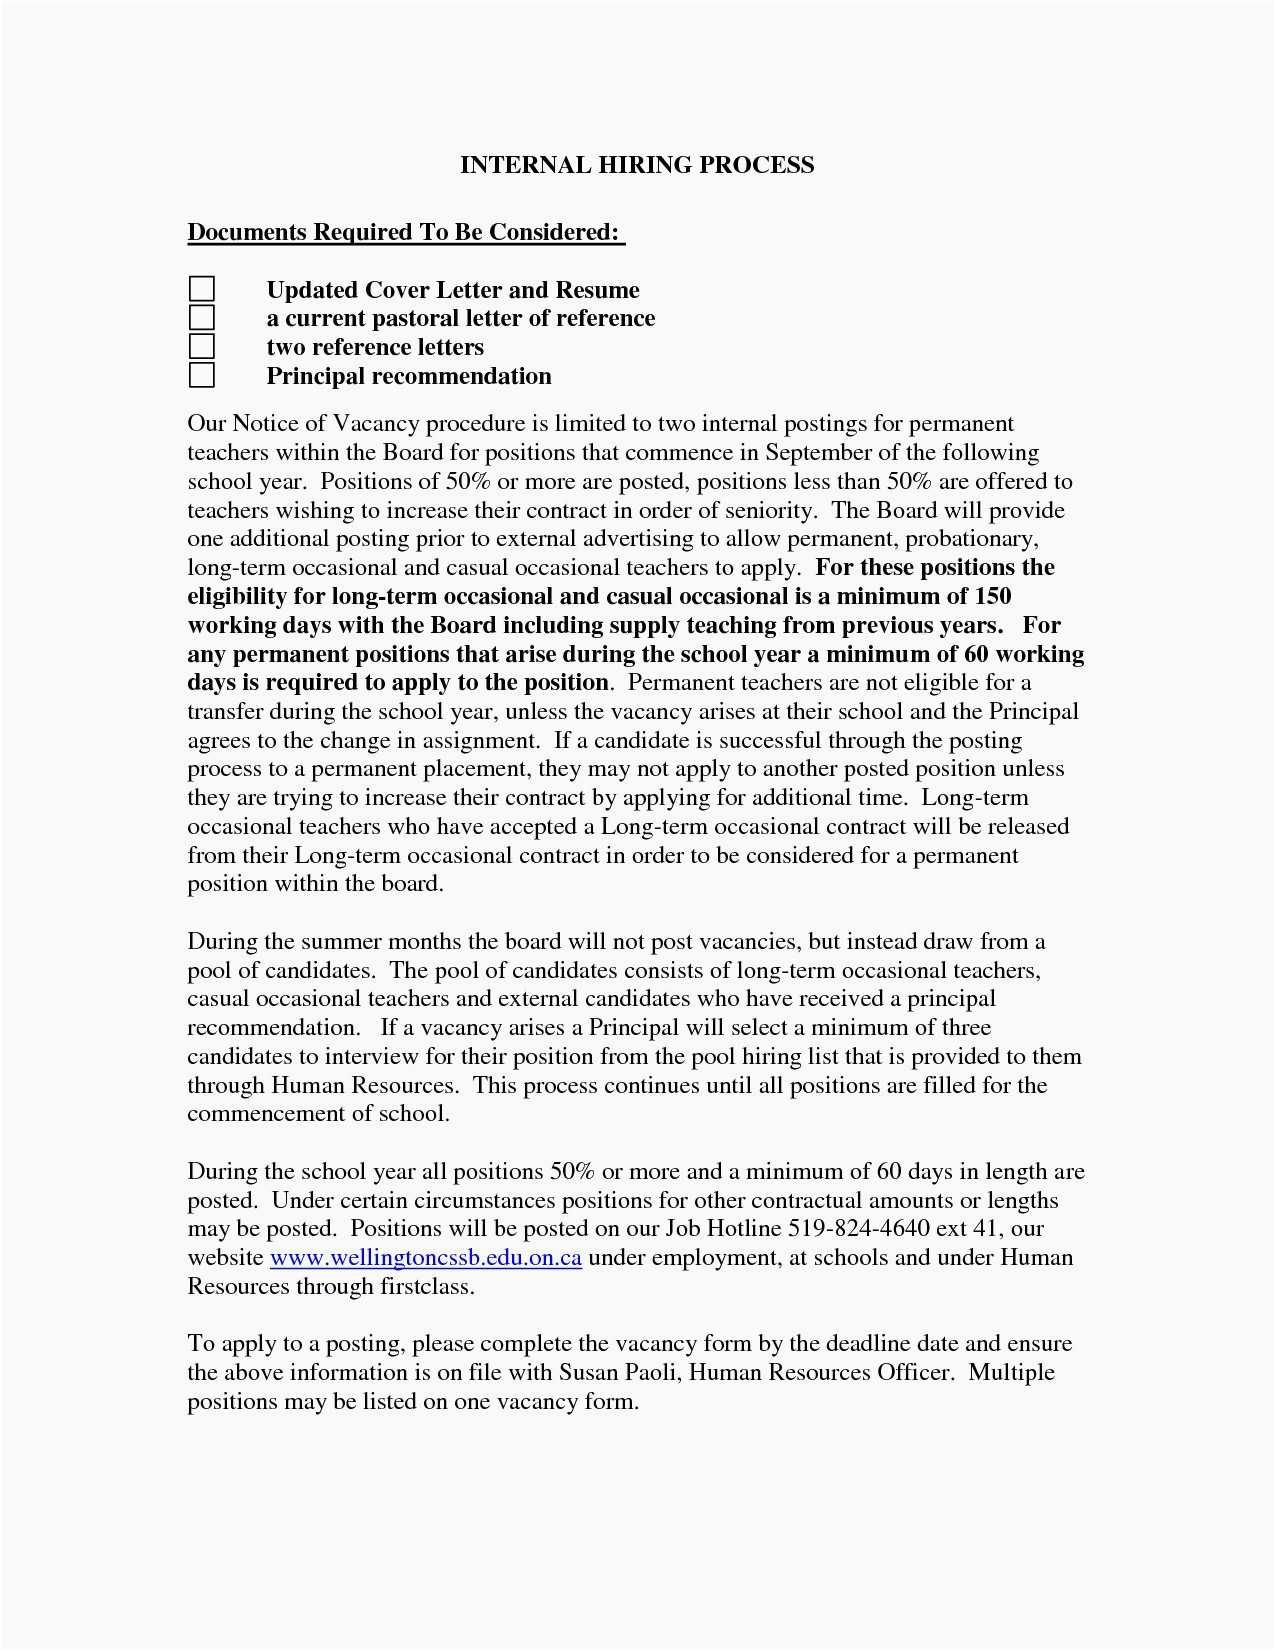 23 Cover Letter For Internal Position With Images Lettering